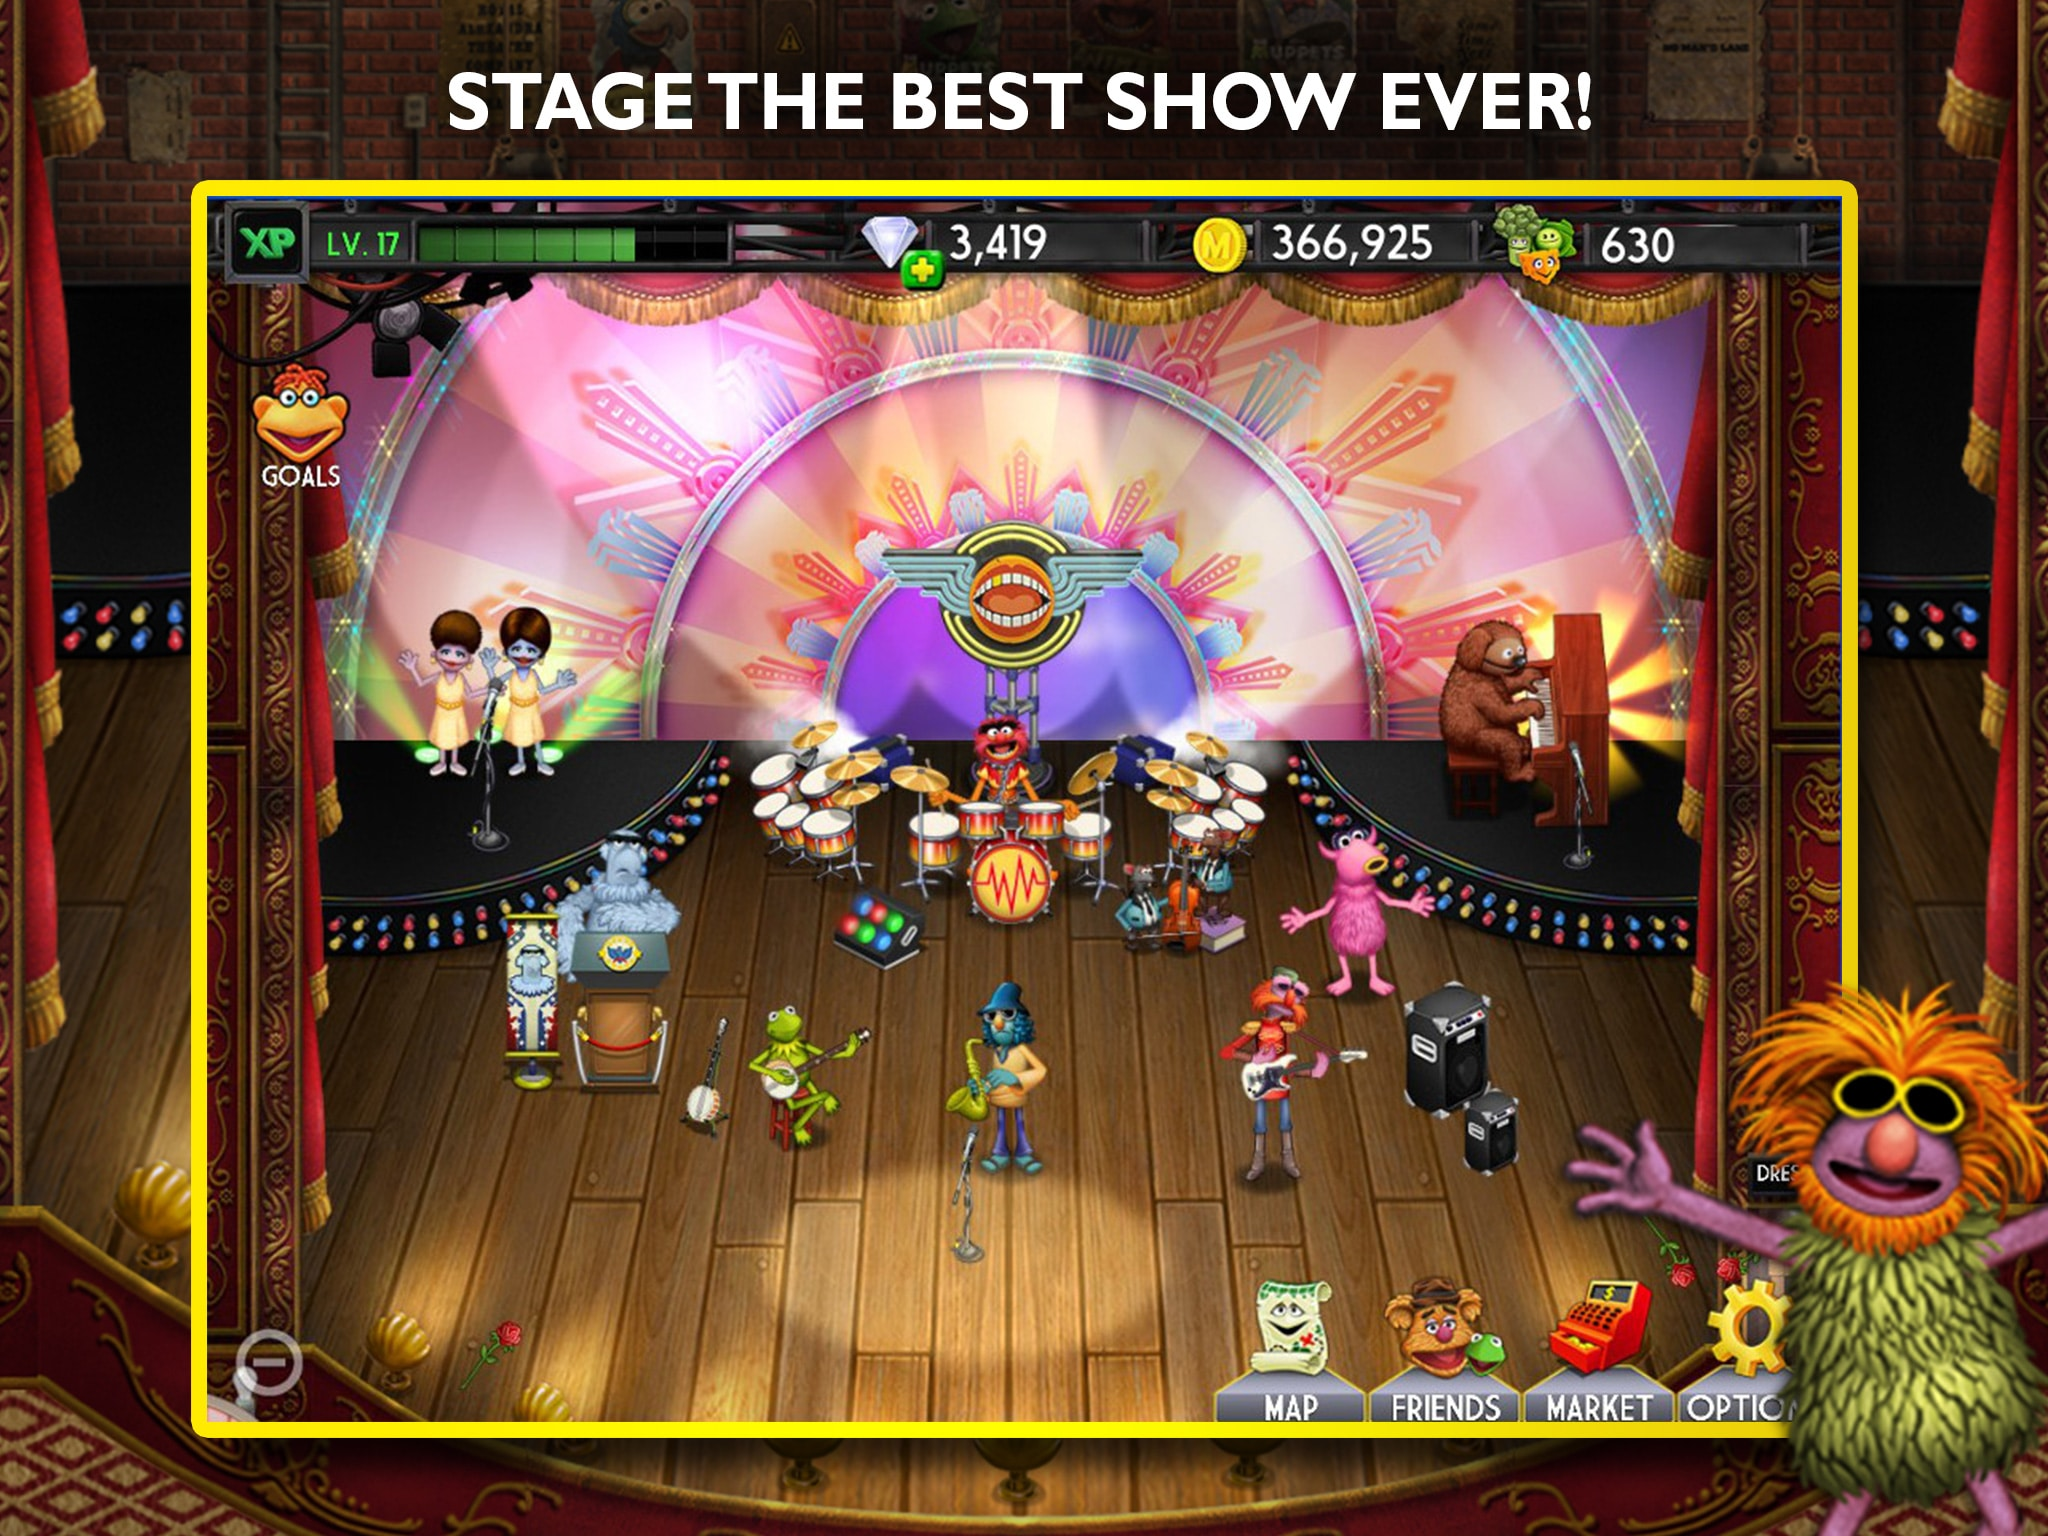 Free mobile downloads: iPhone games